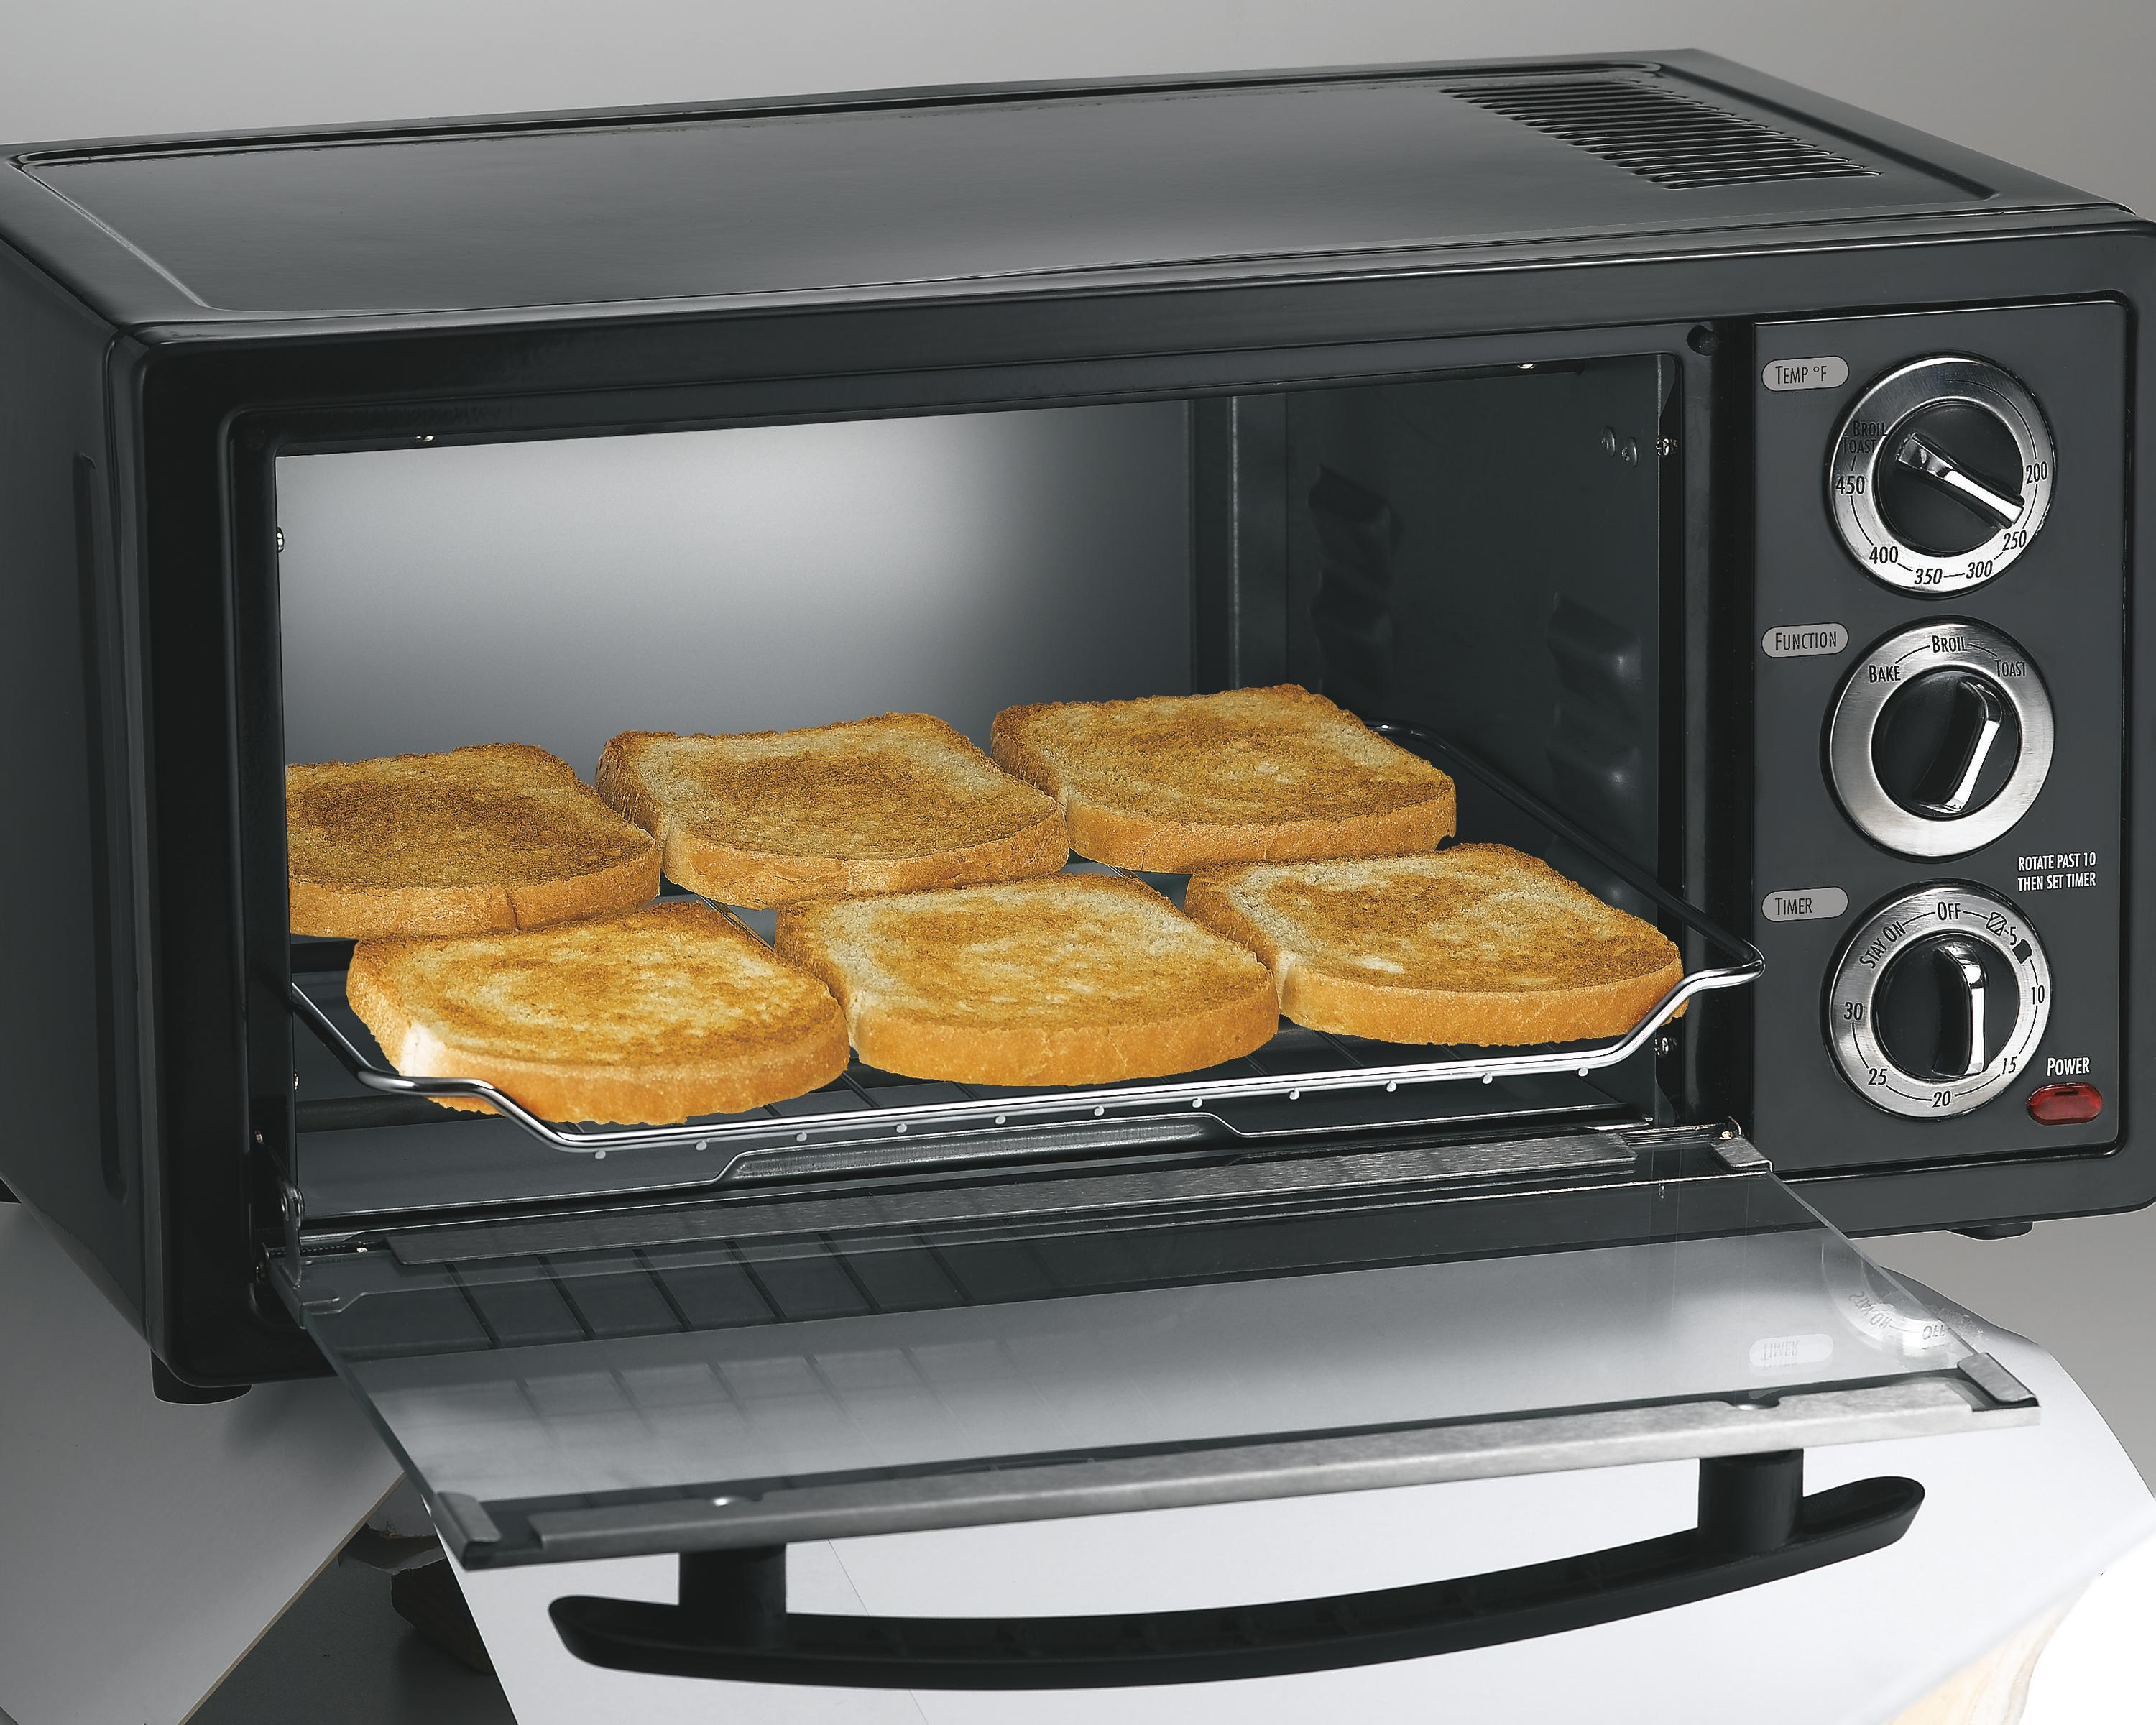 amazon krups ovens in microwave of convection unique toaster oven new built steel stainless deluxe